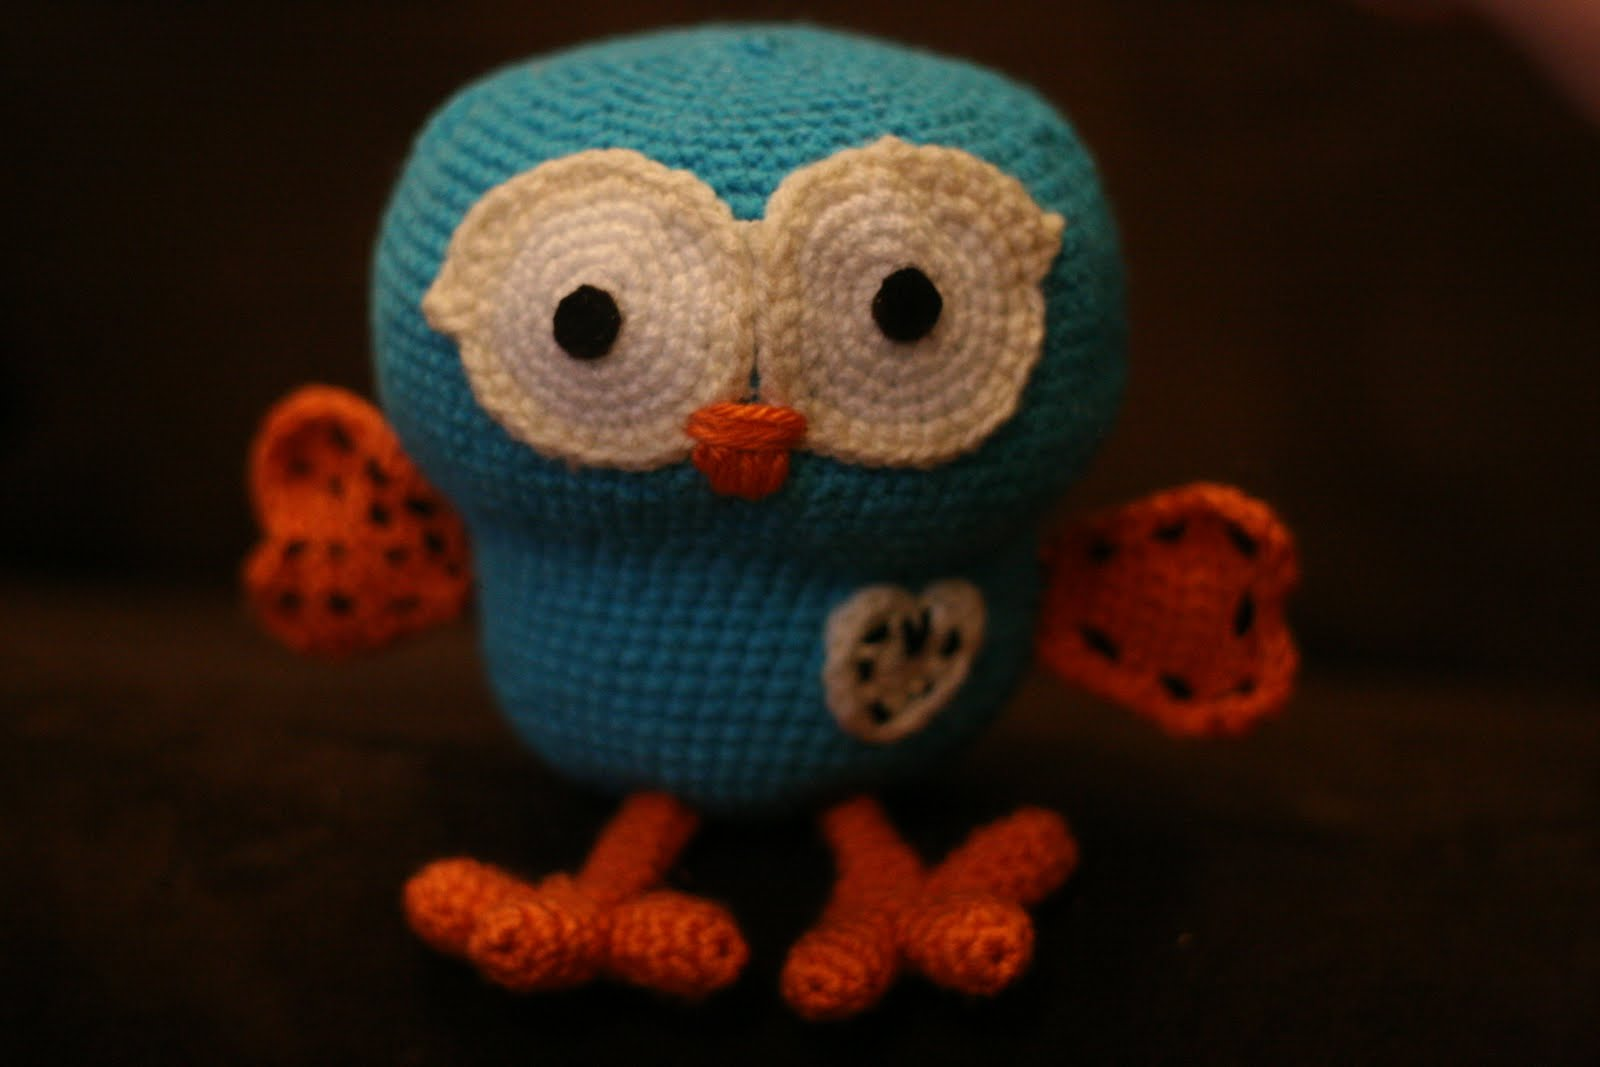 Amigurumi Owl Crochet Patterns Free : 2000 Free Amigurumi Patterns: Giggle and Hoot: free owl ...